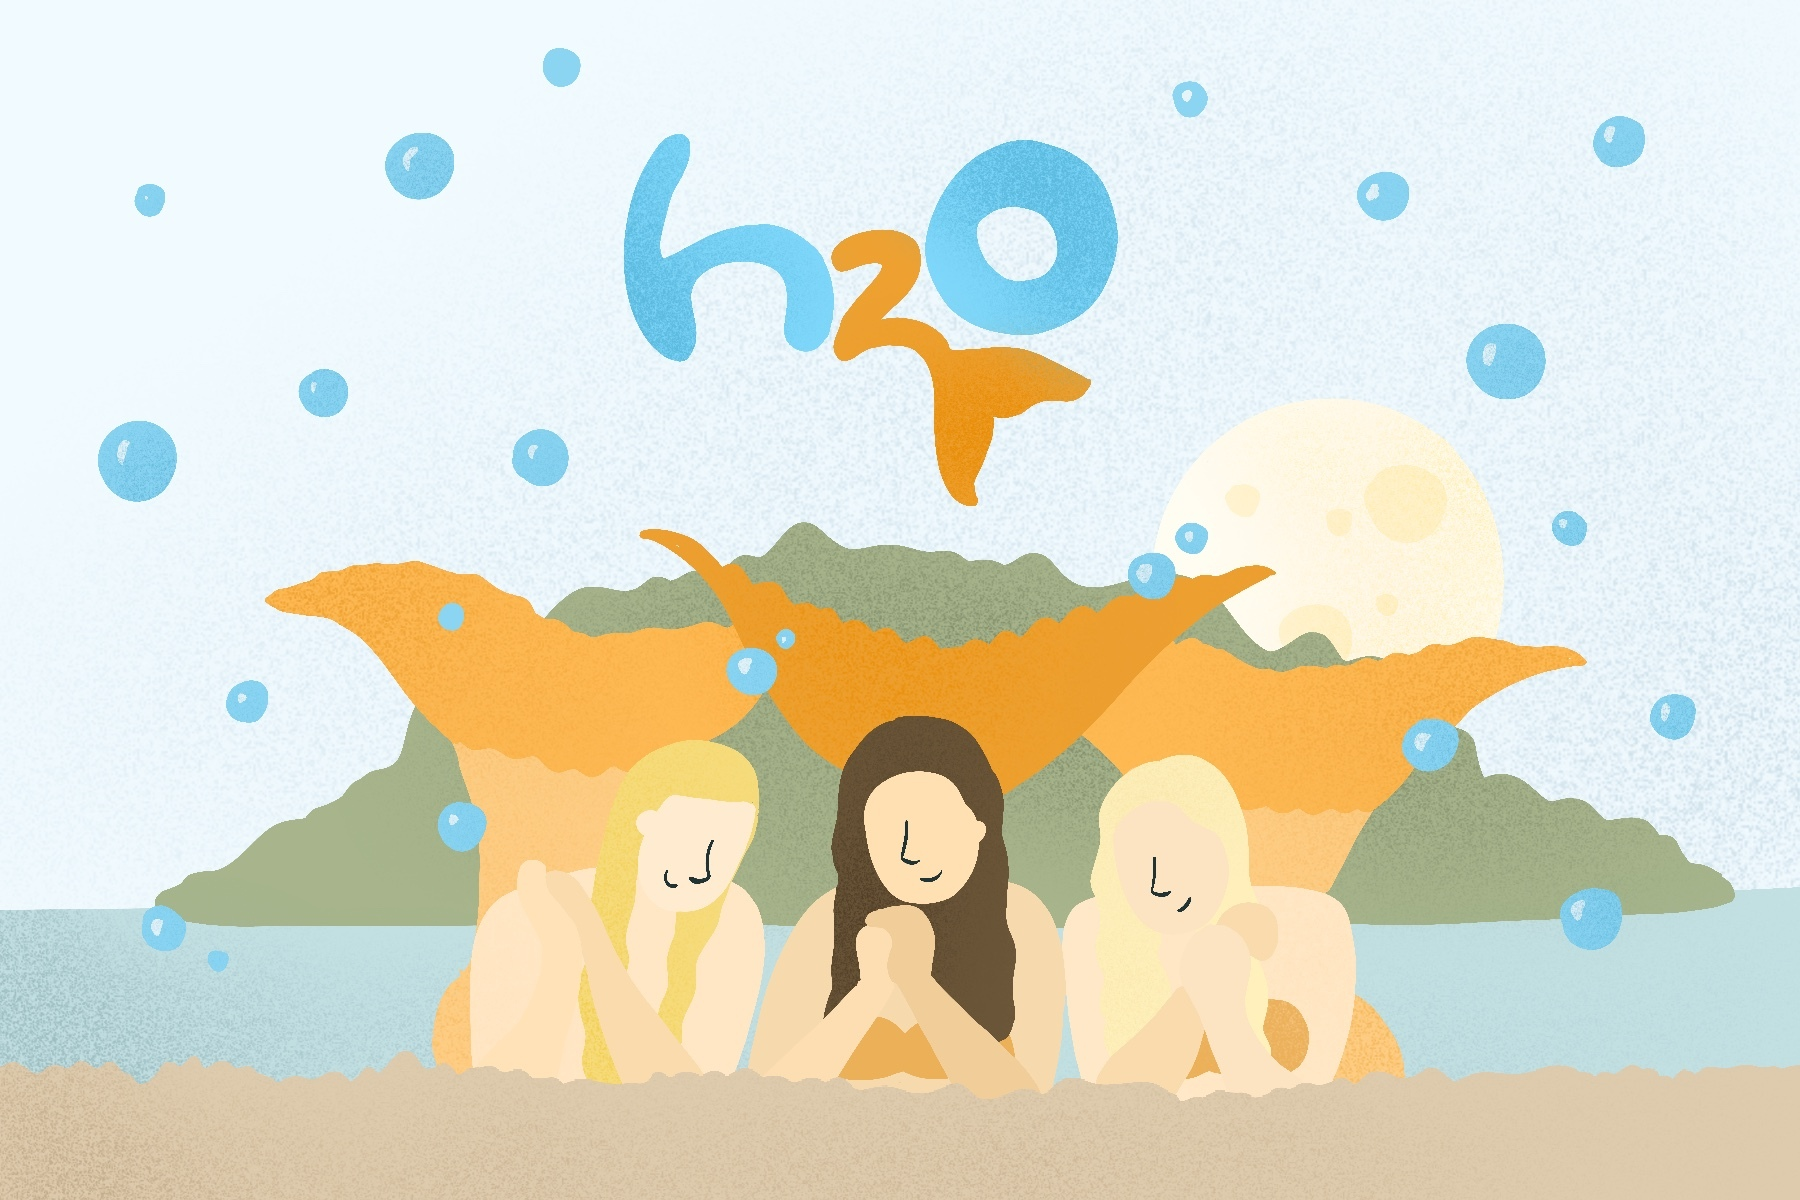 An illustration of the cover of the television show H2O: Just Add Water for an article about remembering this old series. (Illustration by Sonja Vasiljeva, San Jose State University)